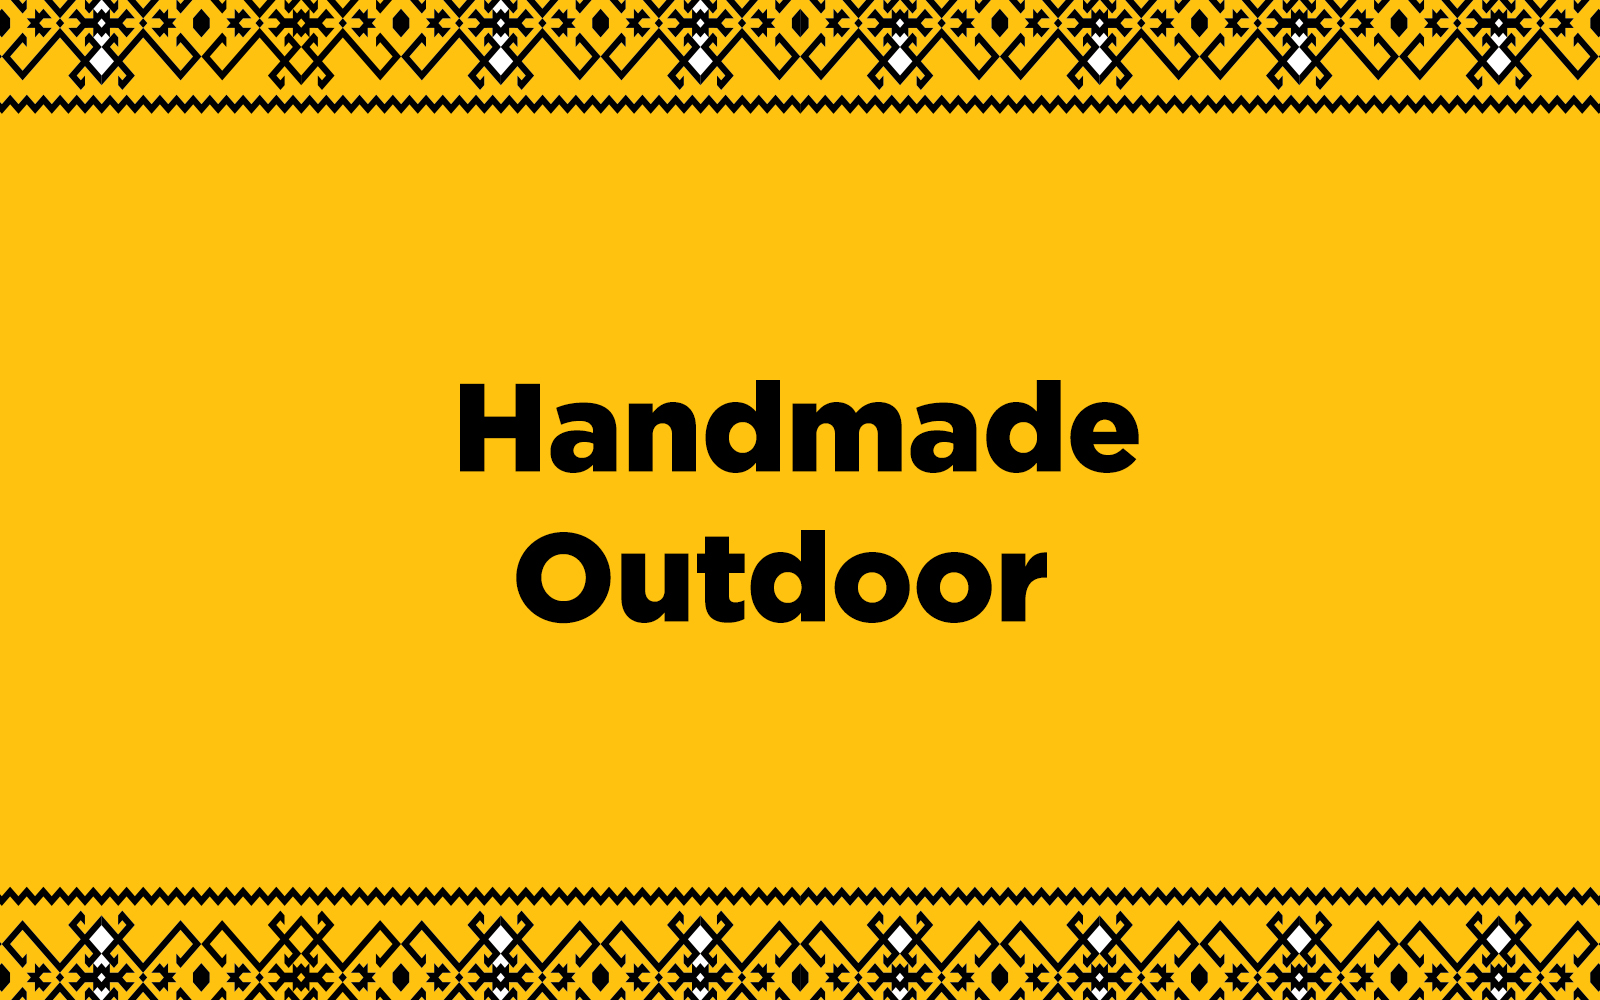 Hand Made Outdoor